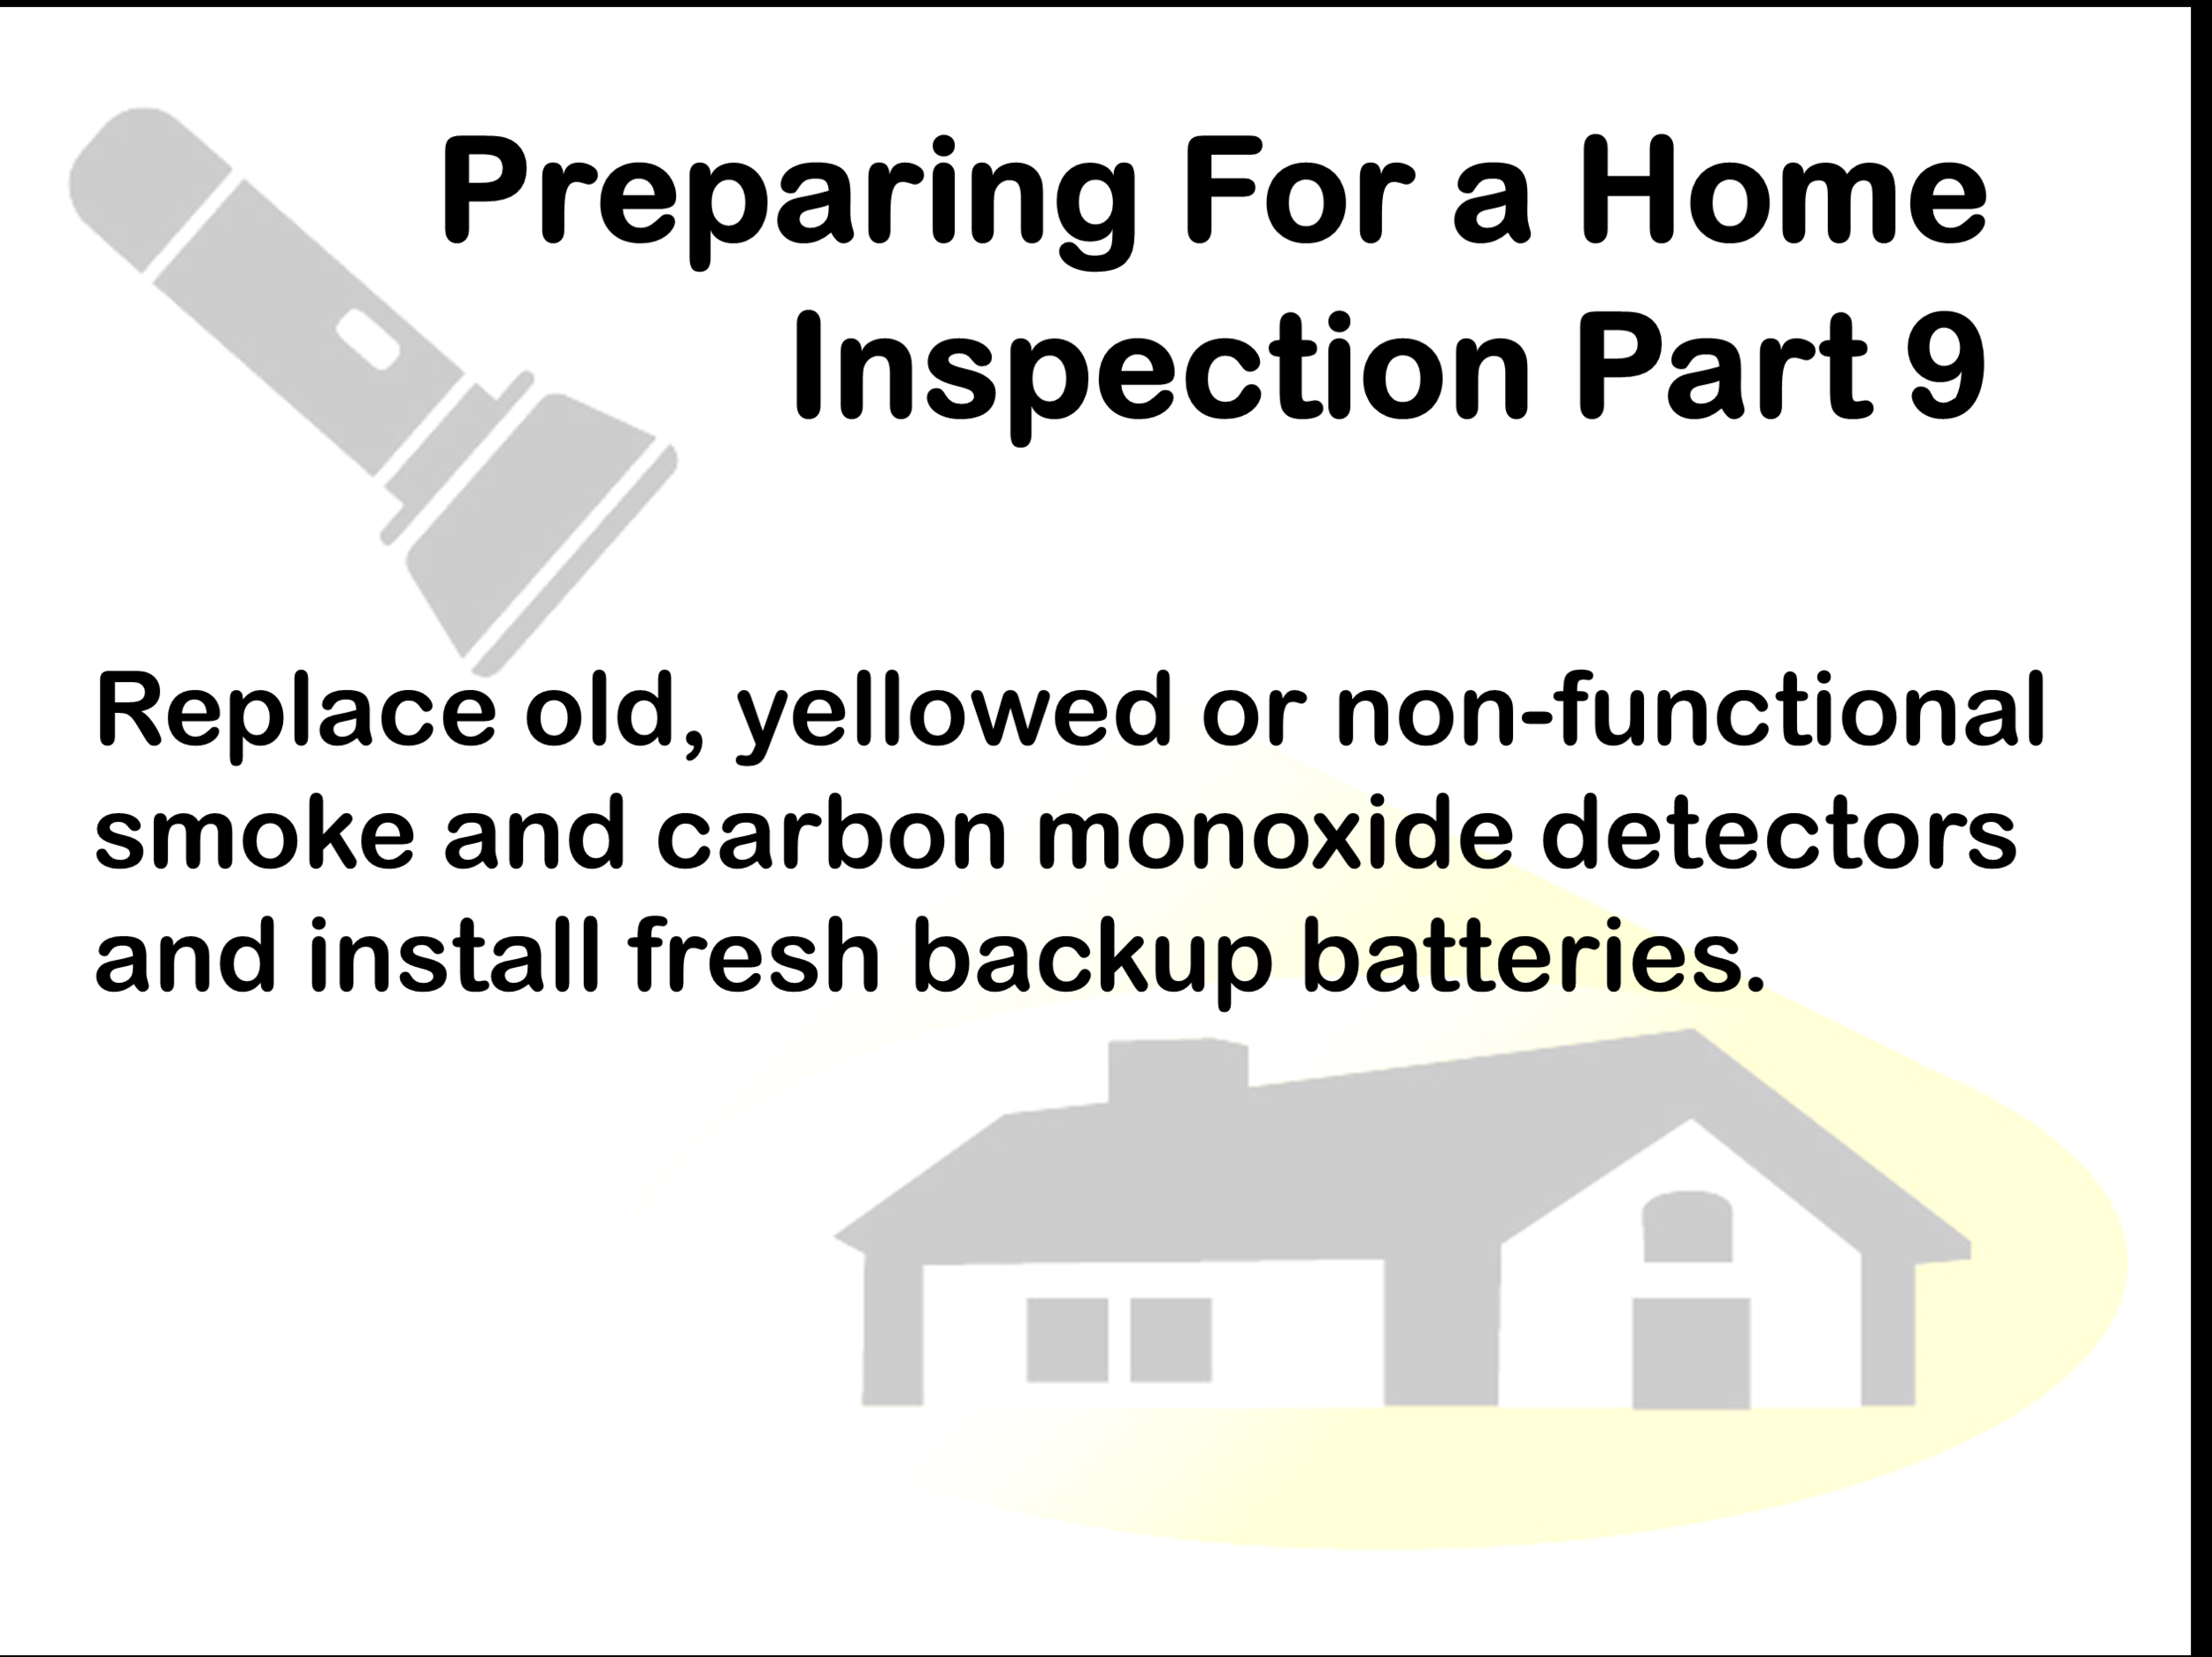 Replace smoke detectors every 10-yrs and carbon monoxide detectors every 7-yrs.